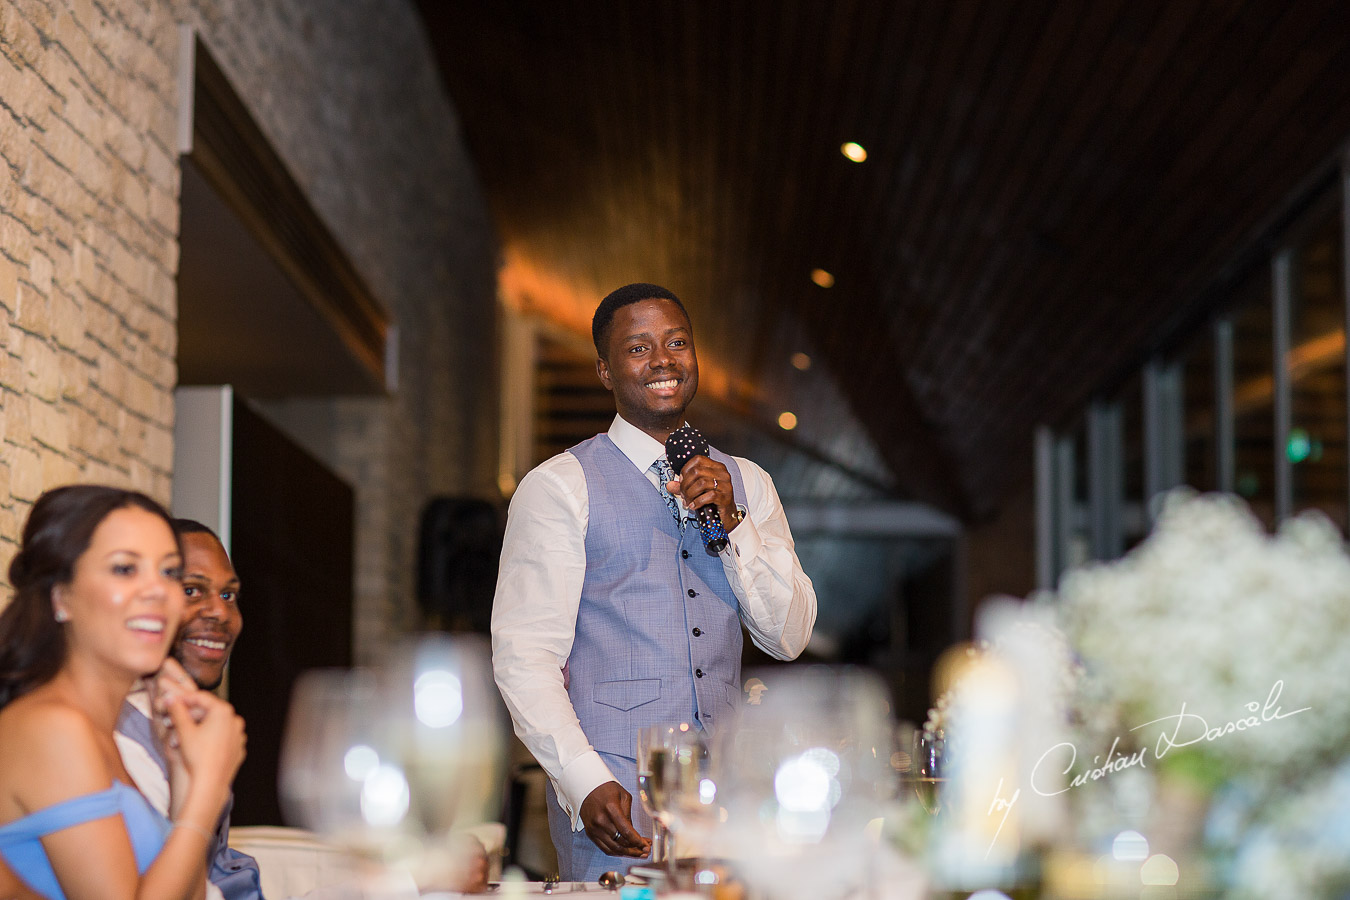 Groom speech moment captured at a wedding at Minthis Hills in Cyprus, by Cristian Dascalu.